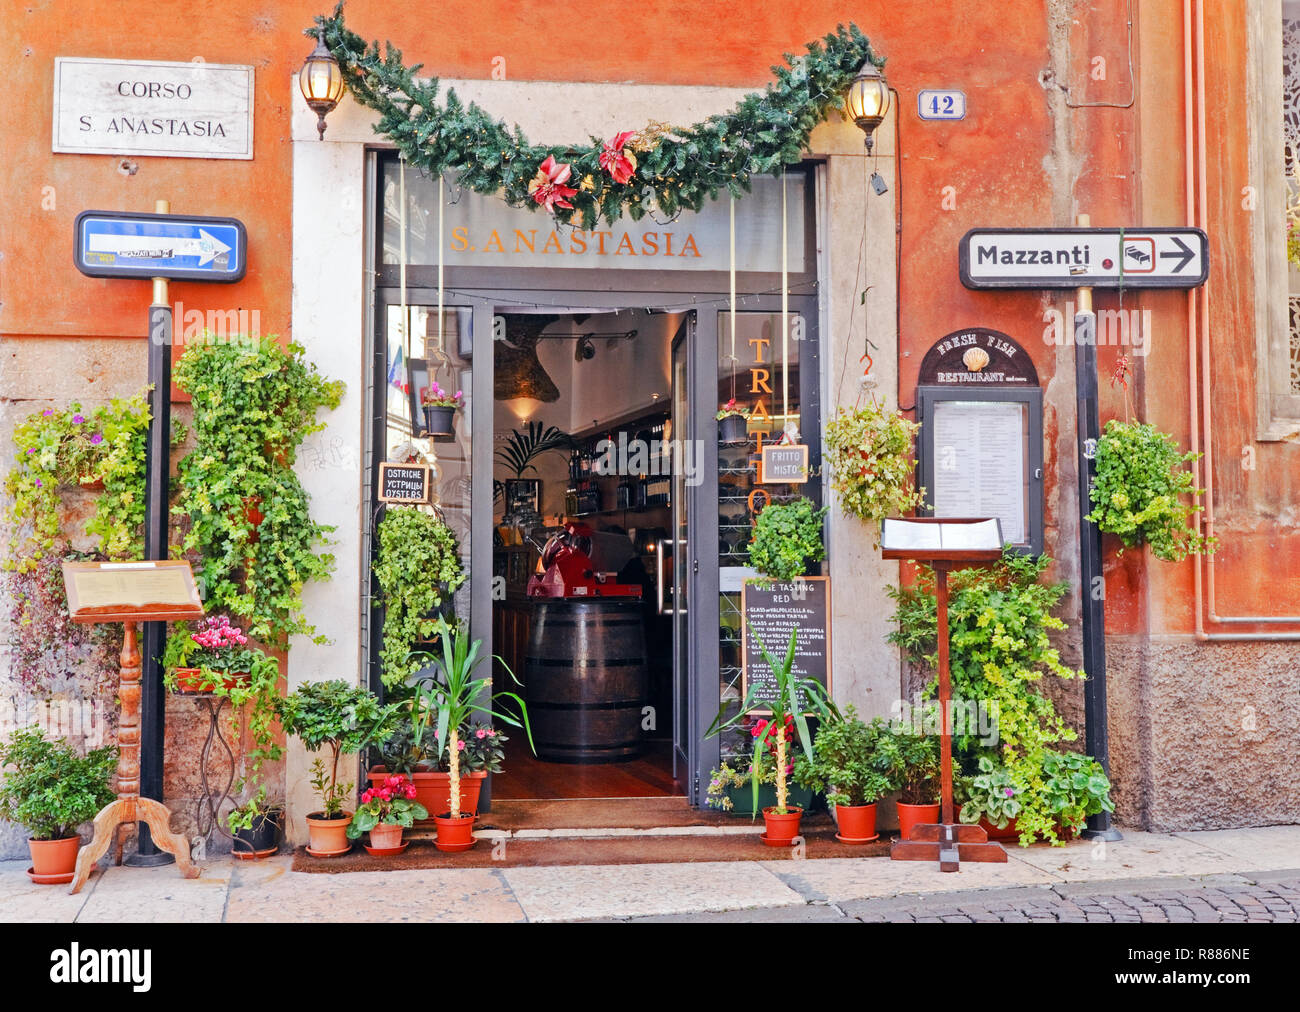 Entrance to a trattoria in Verona, Italy - Stock Image